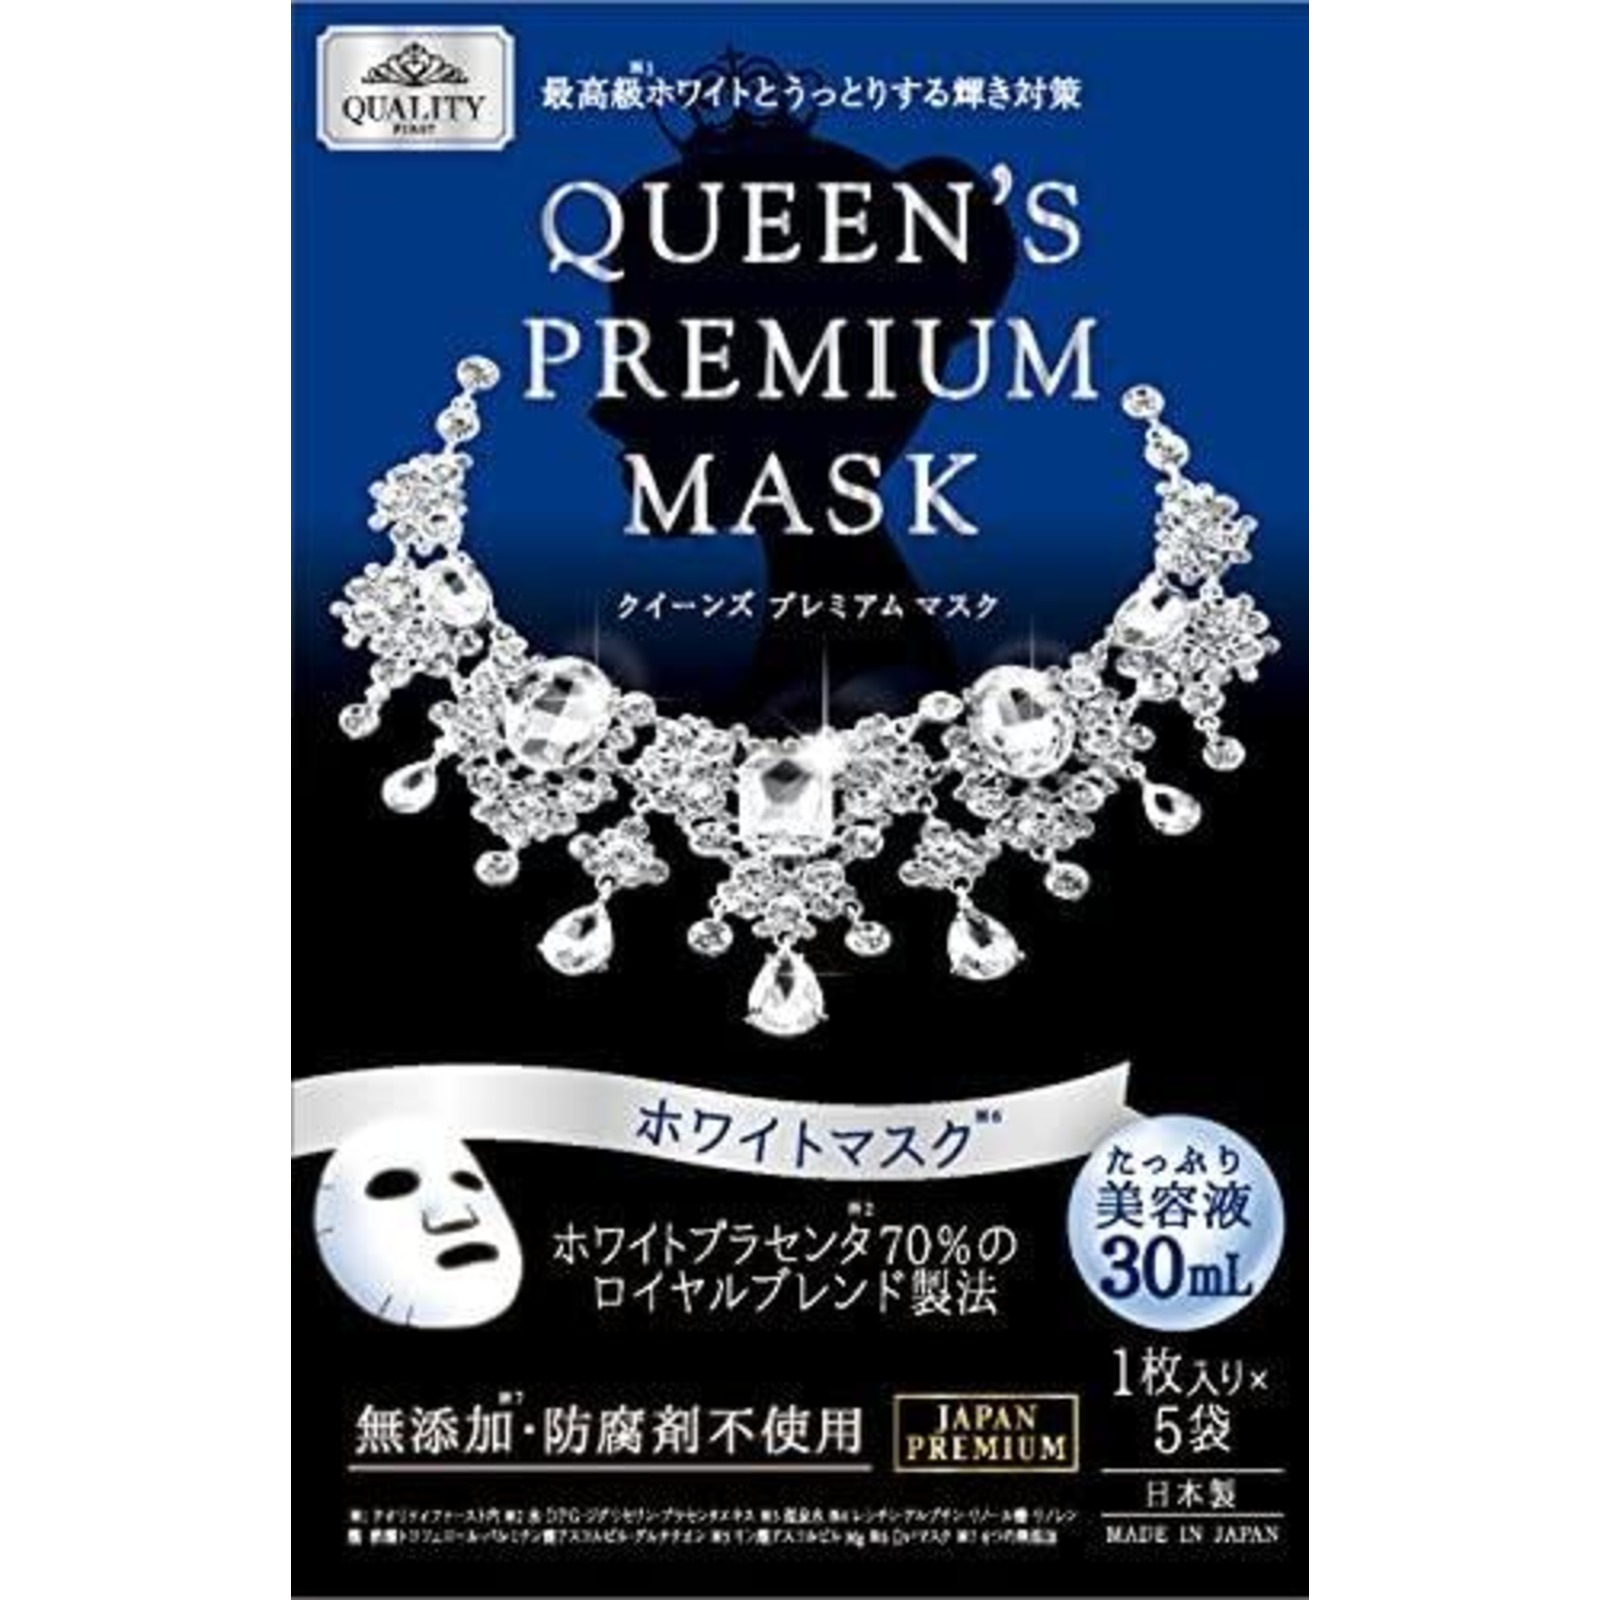 Quality 1st Quality 1st Queens Premium Mask Whitening 5s